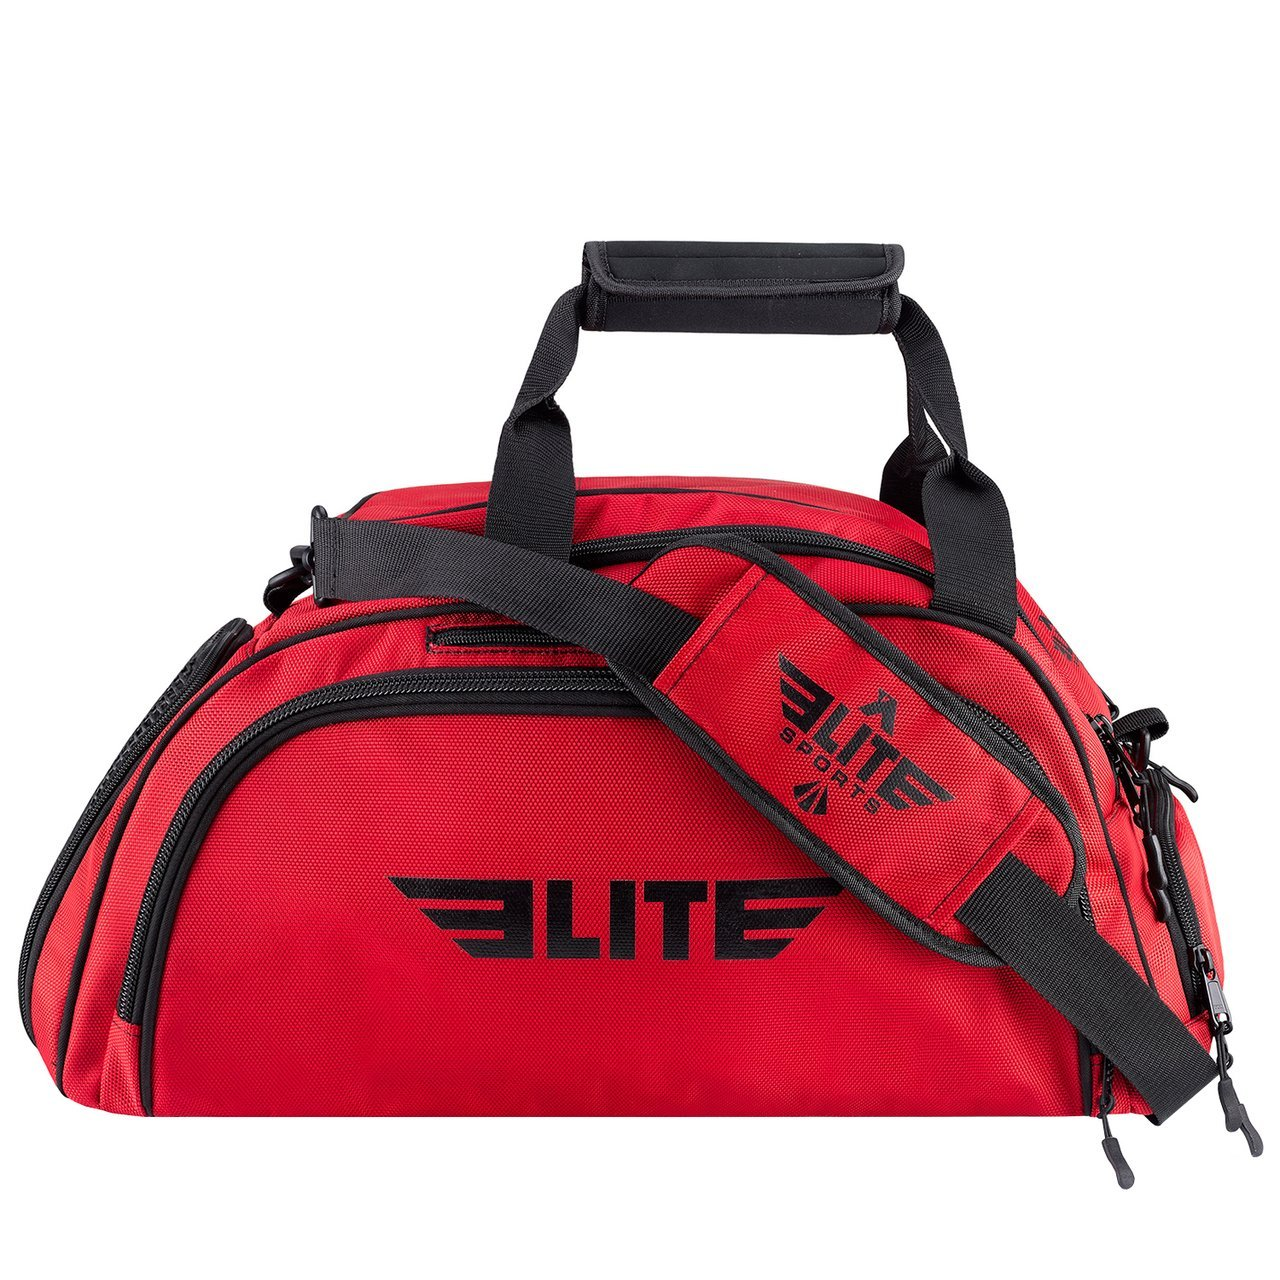 Load image into Gallery viewer, Elite Sports Warrior Series Red Large Duffel Brazilian Jiu Jitsu BJJ Gear Gym Bag & Backpack